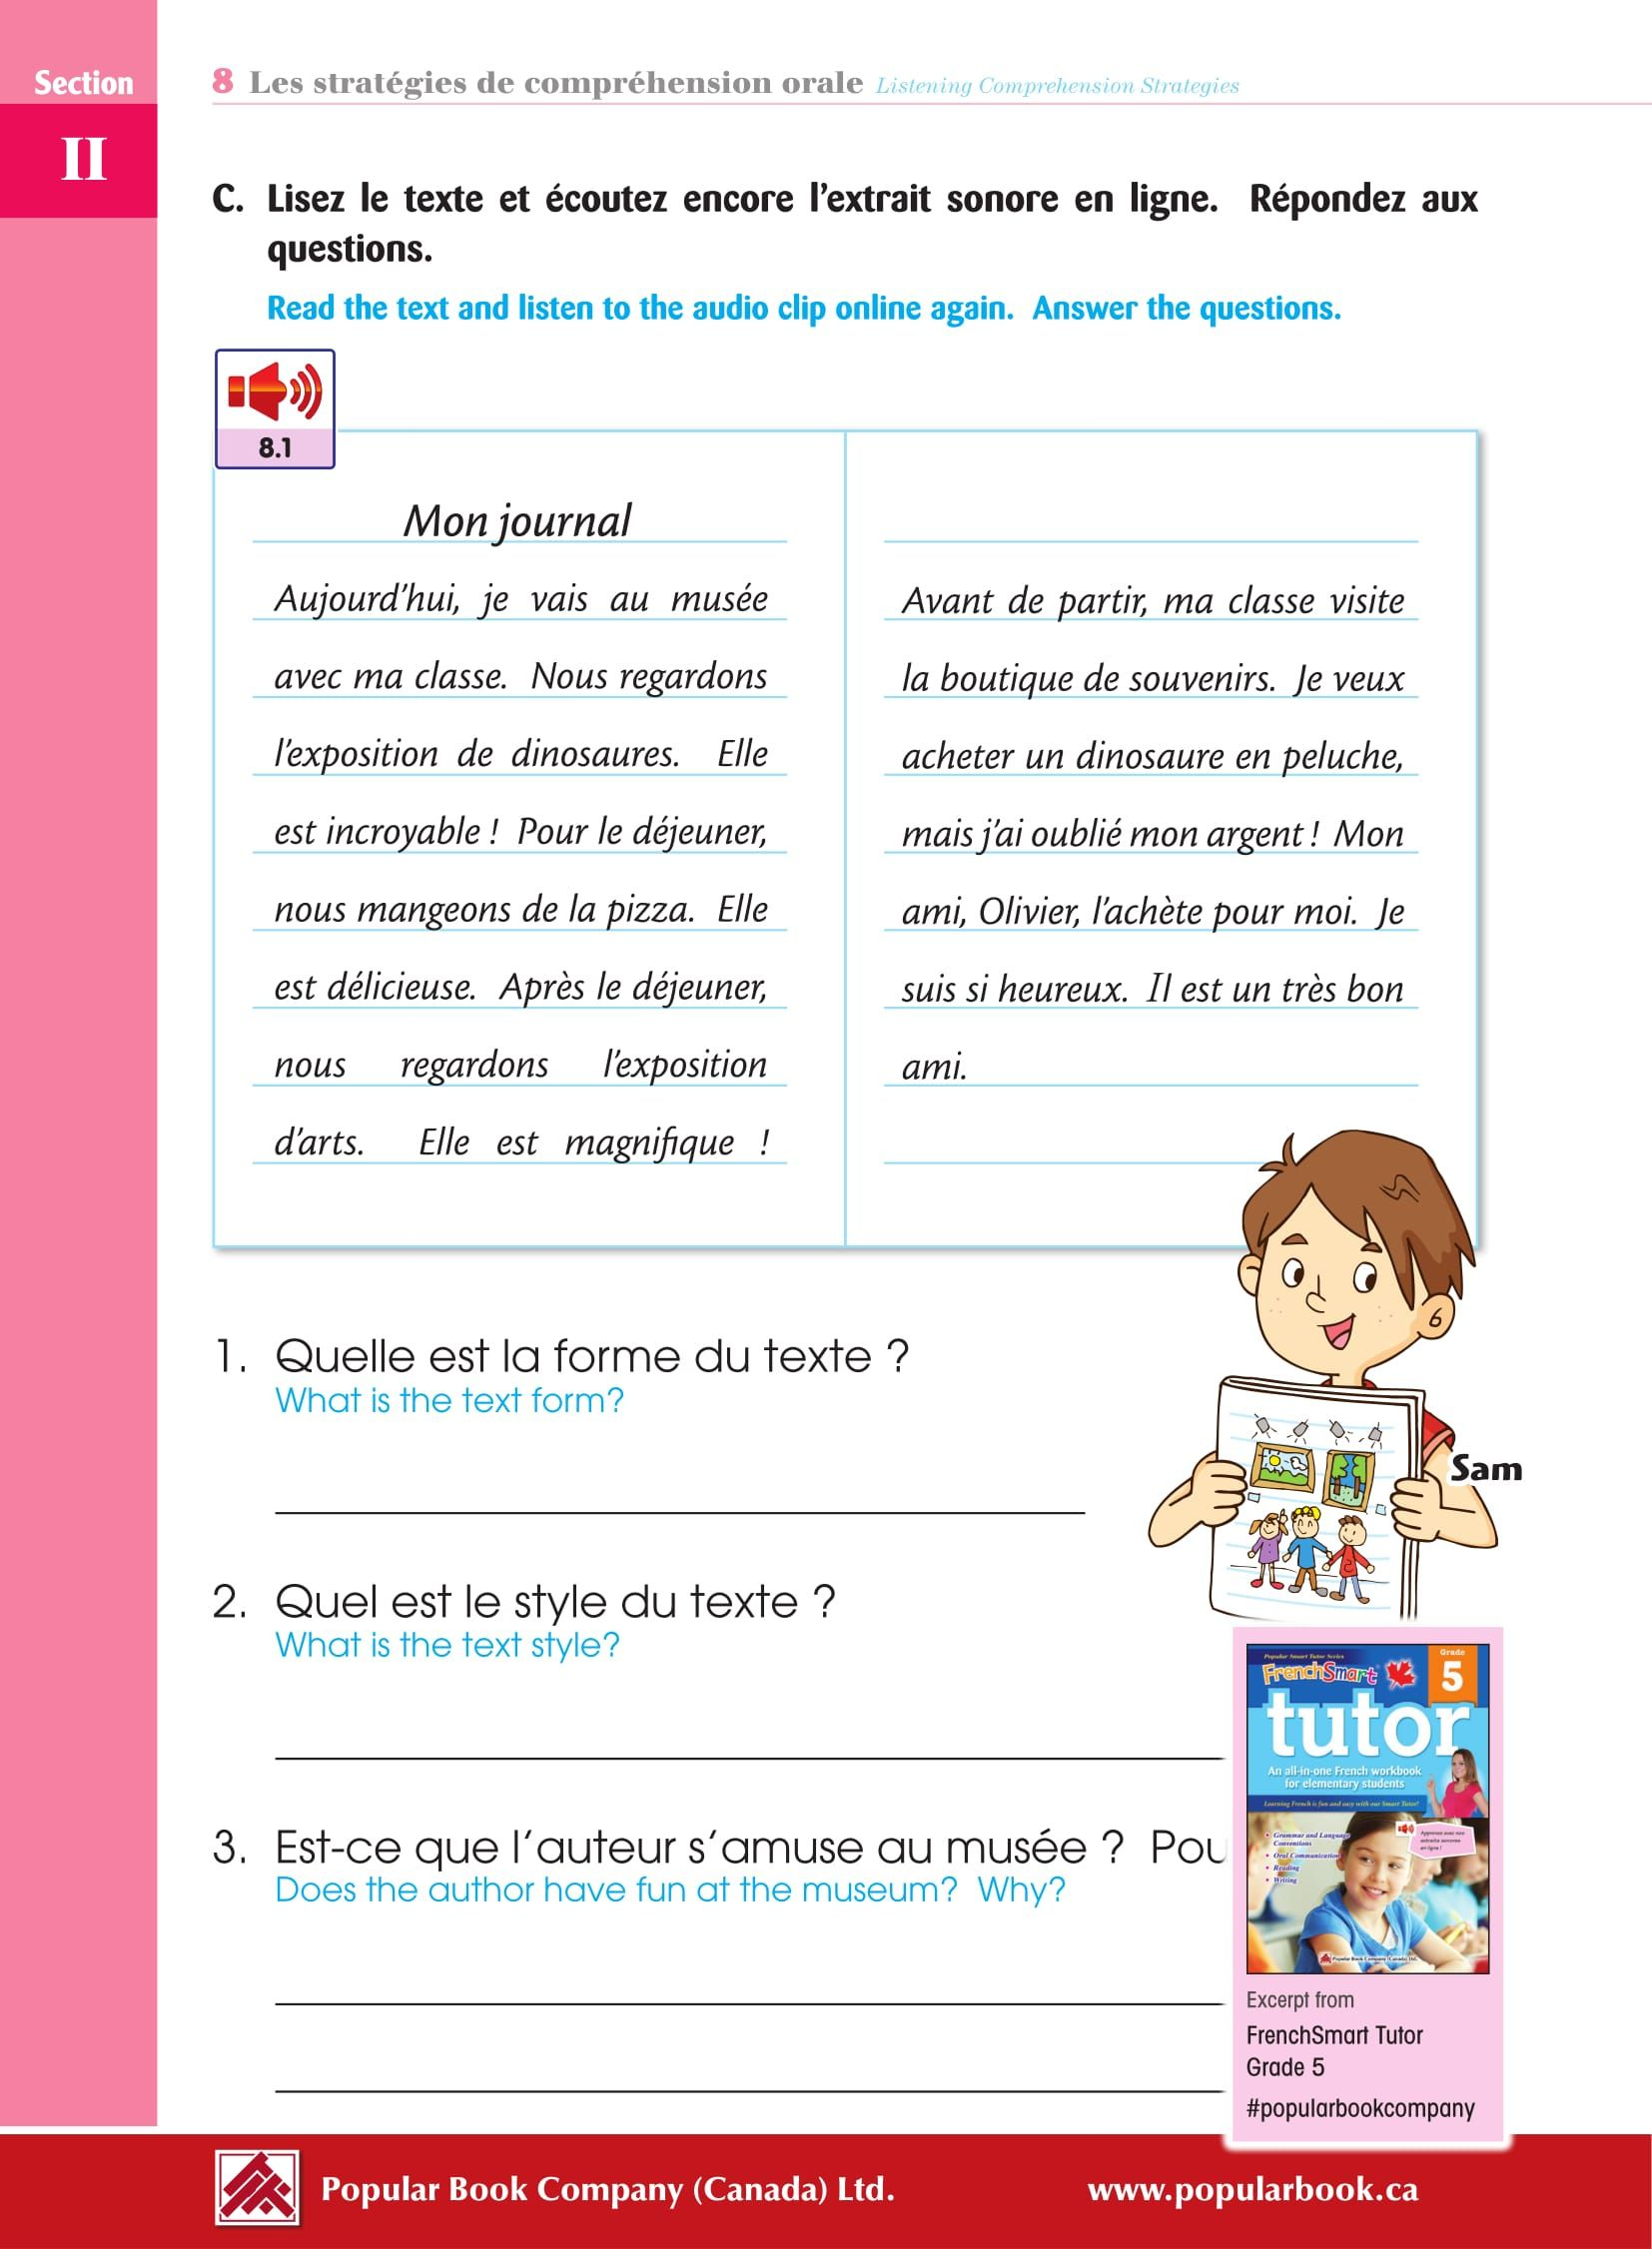 hight resolution of Download the free sample pages from FrenchSmart Tutor Grade 5 workbook.  #PopularBookCompany #FrenchSmartT…   Free worksheets for kids